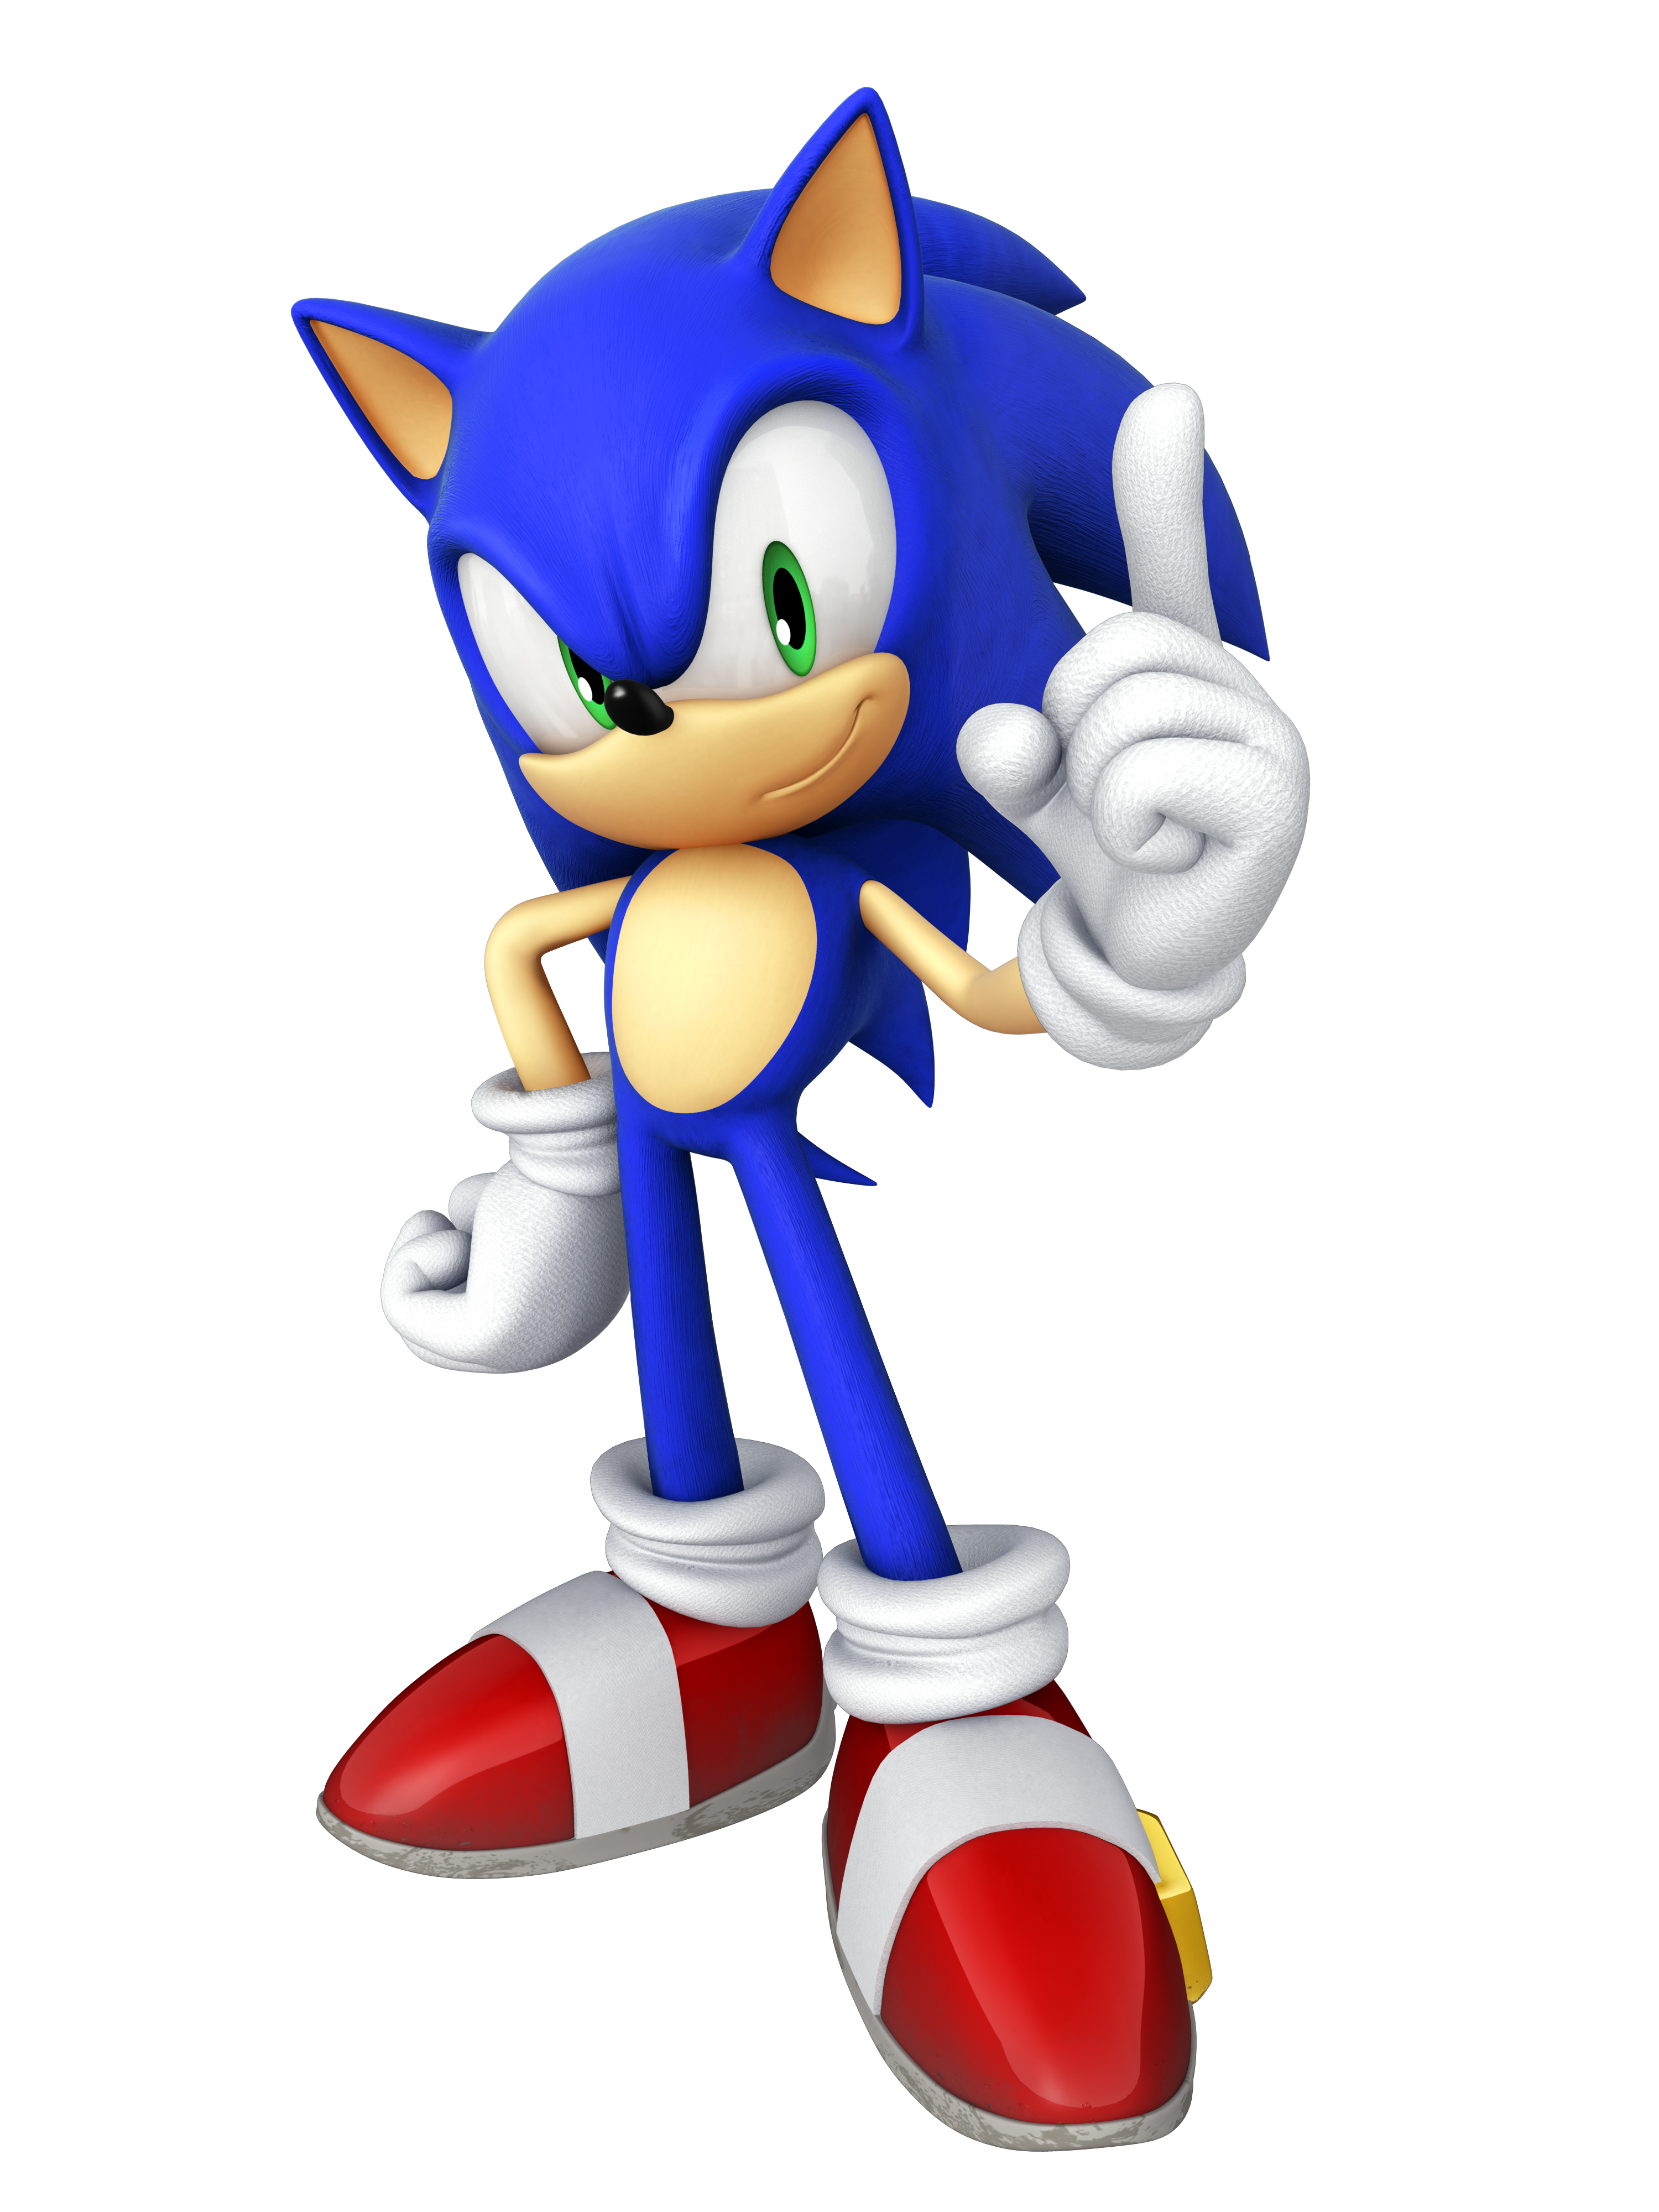 Gallery » Official Art » Sonic the Hedgehog » Sonic The Hedgehog 4 ...